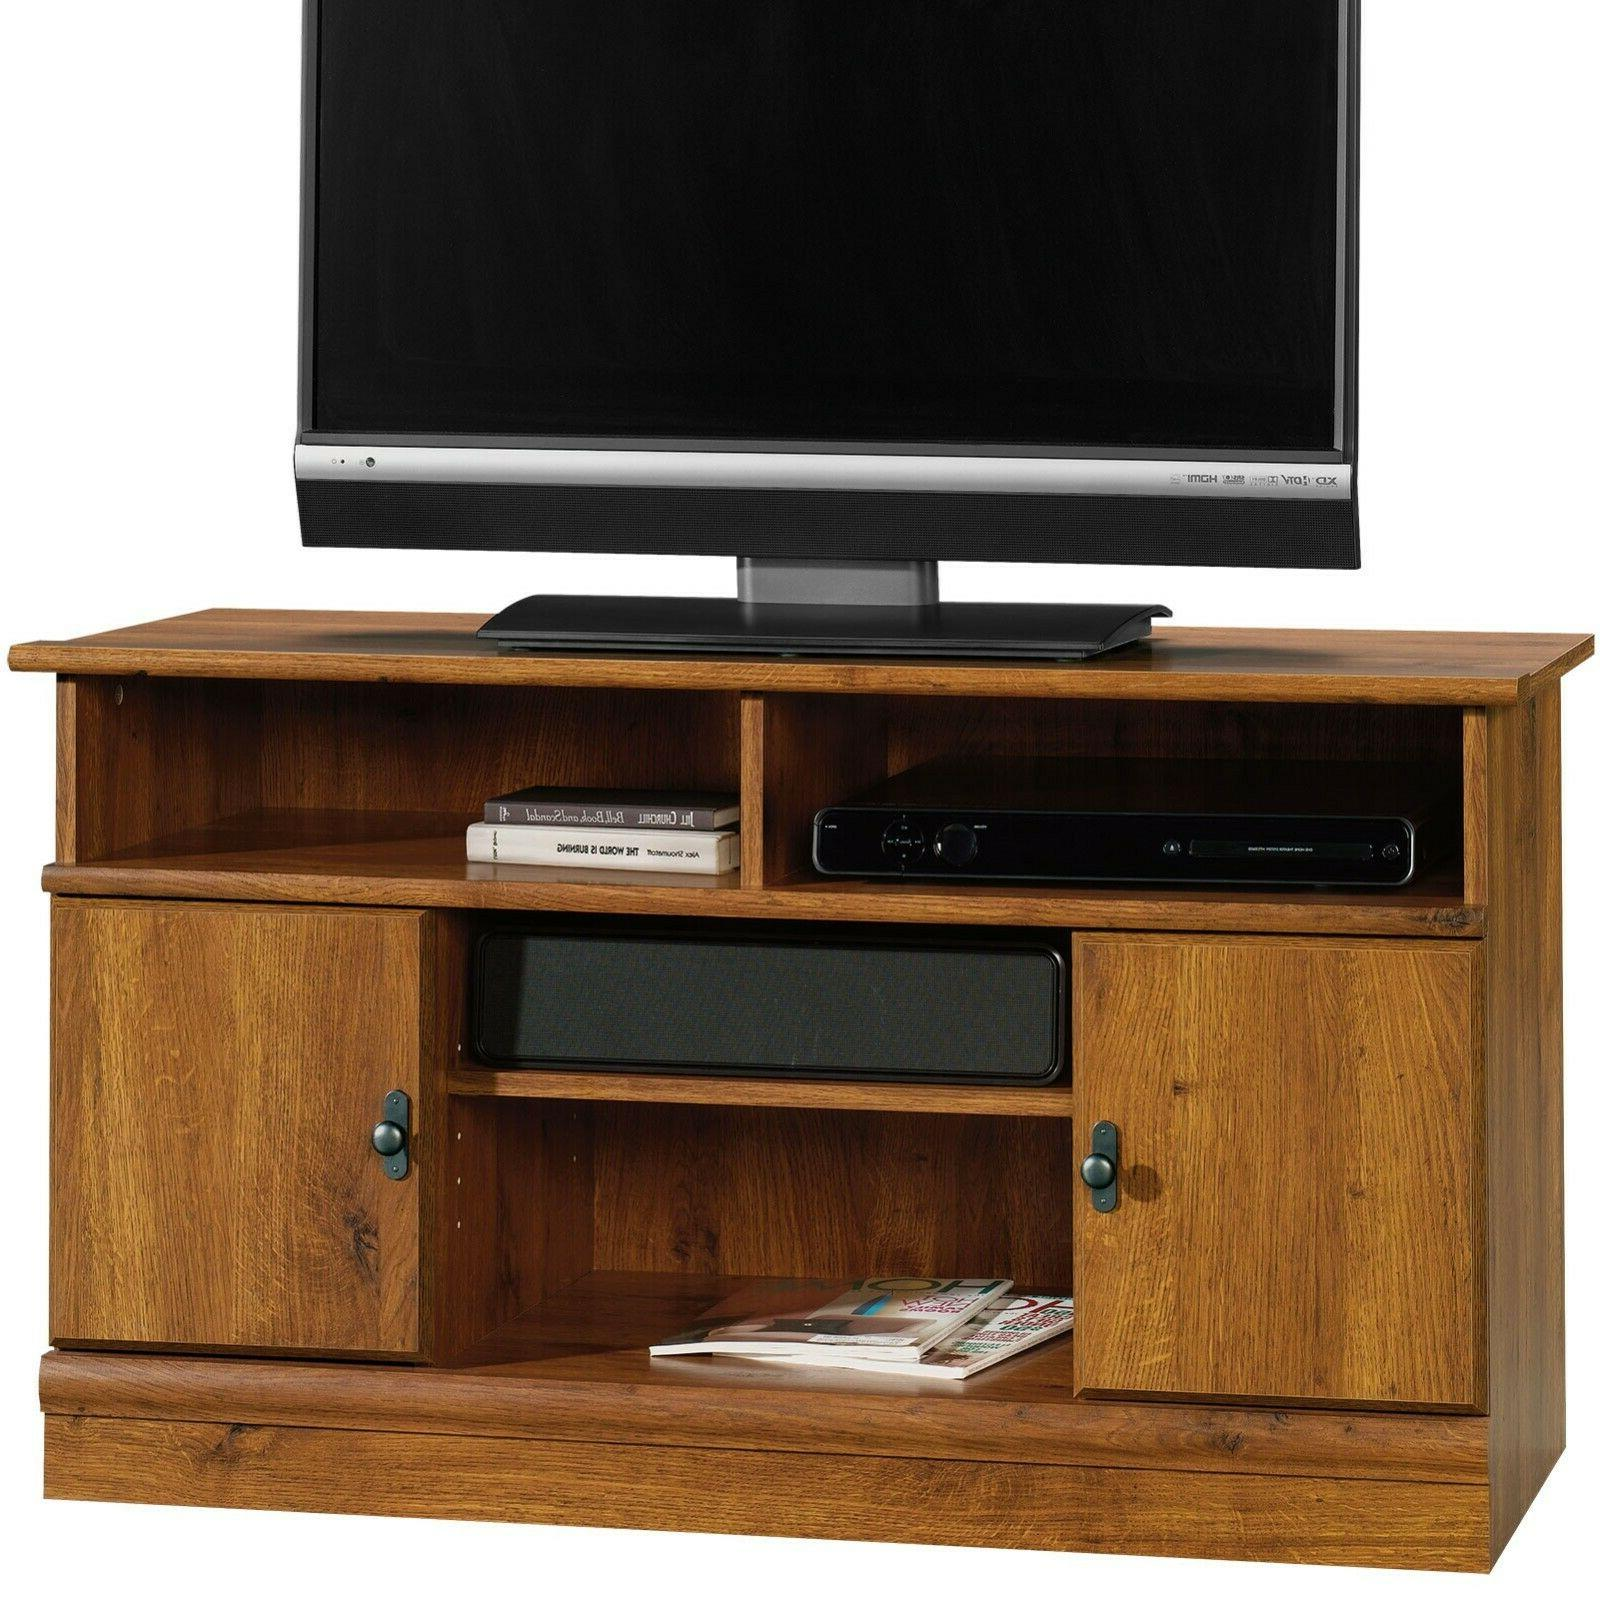 Sauder 407432 Harvest Mill Panel Tv Stand, For TV's up to 42